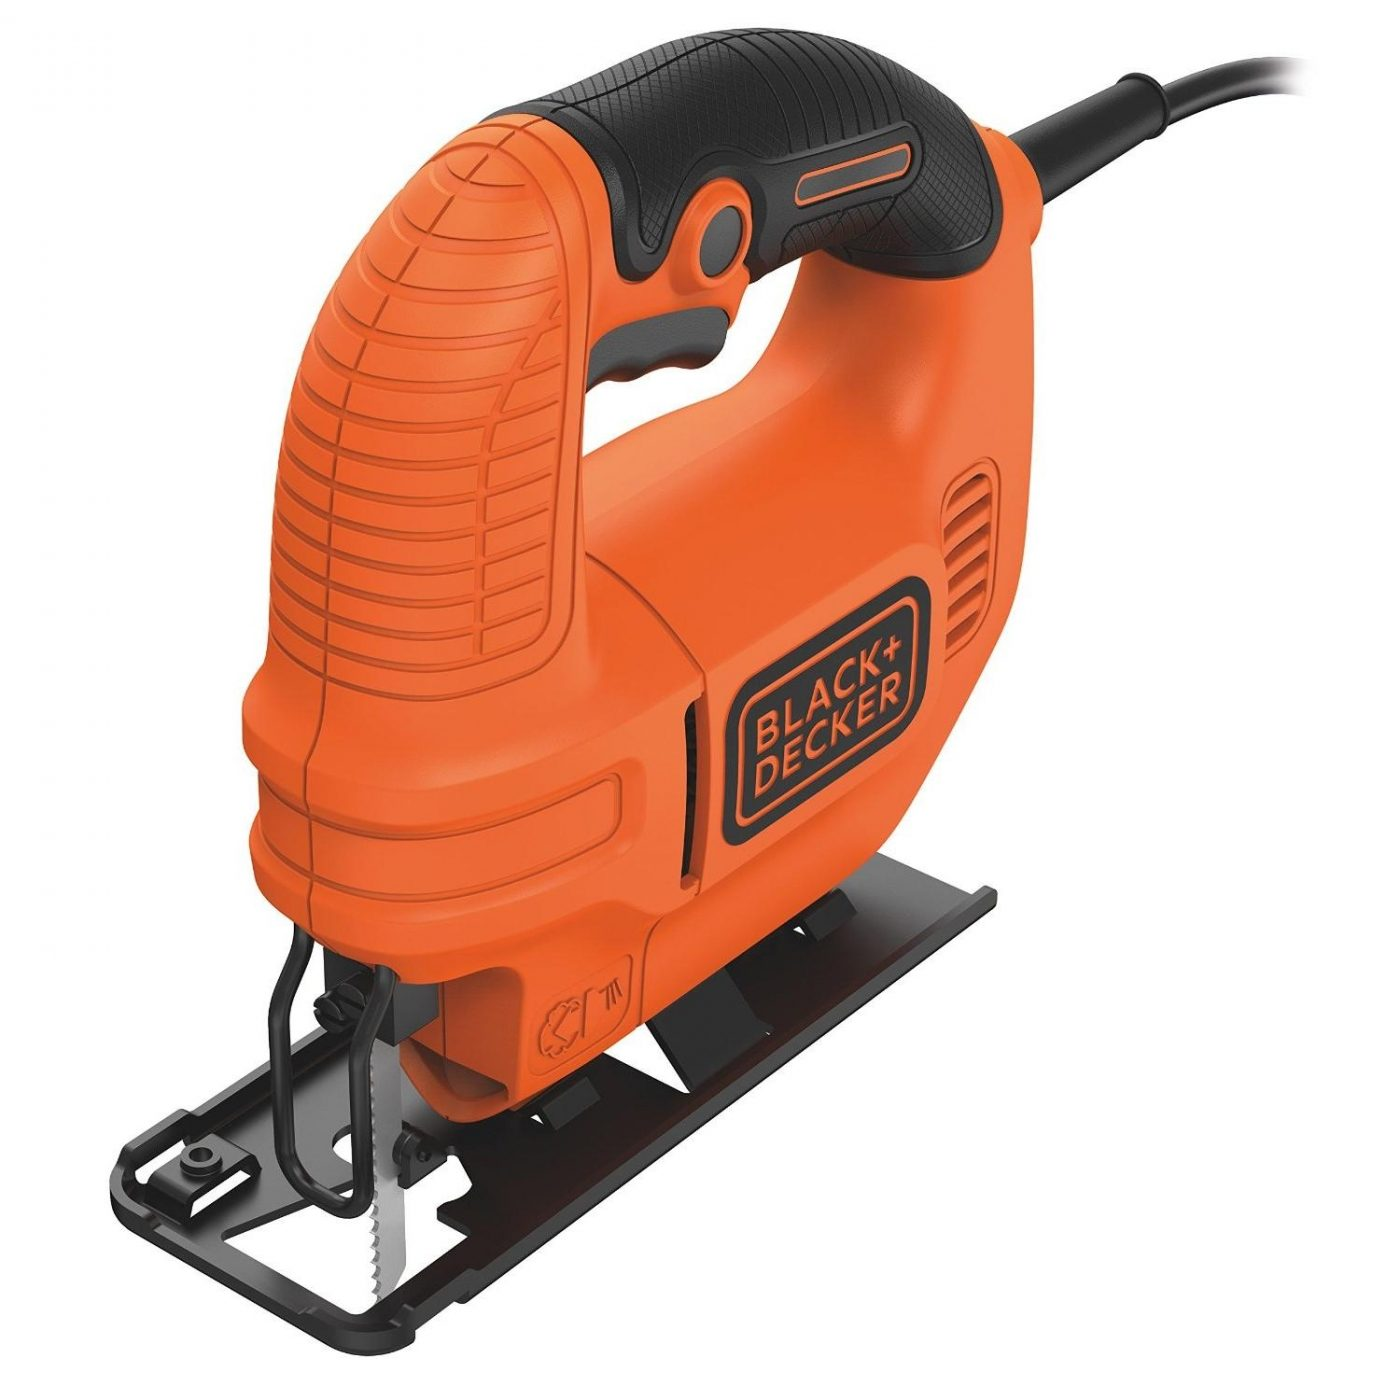 Sierra de calar Black and Decker KS501-QS 400 W